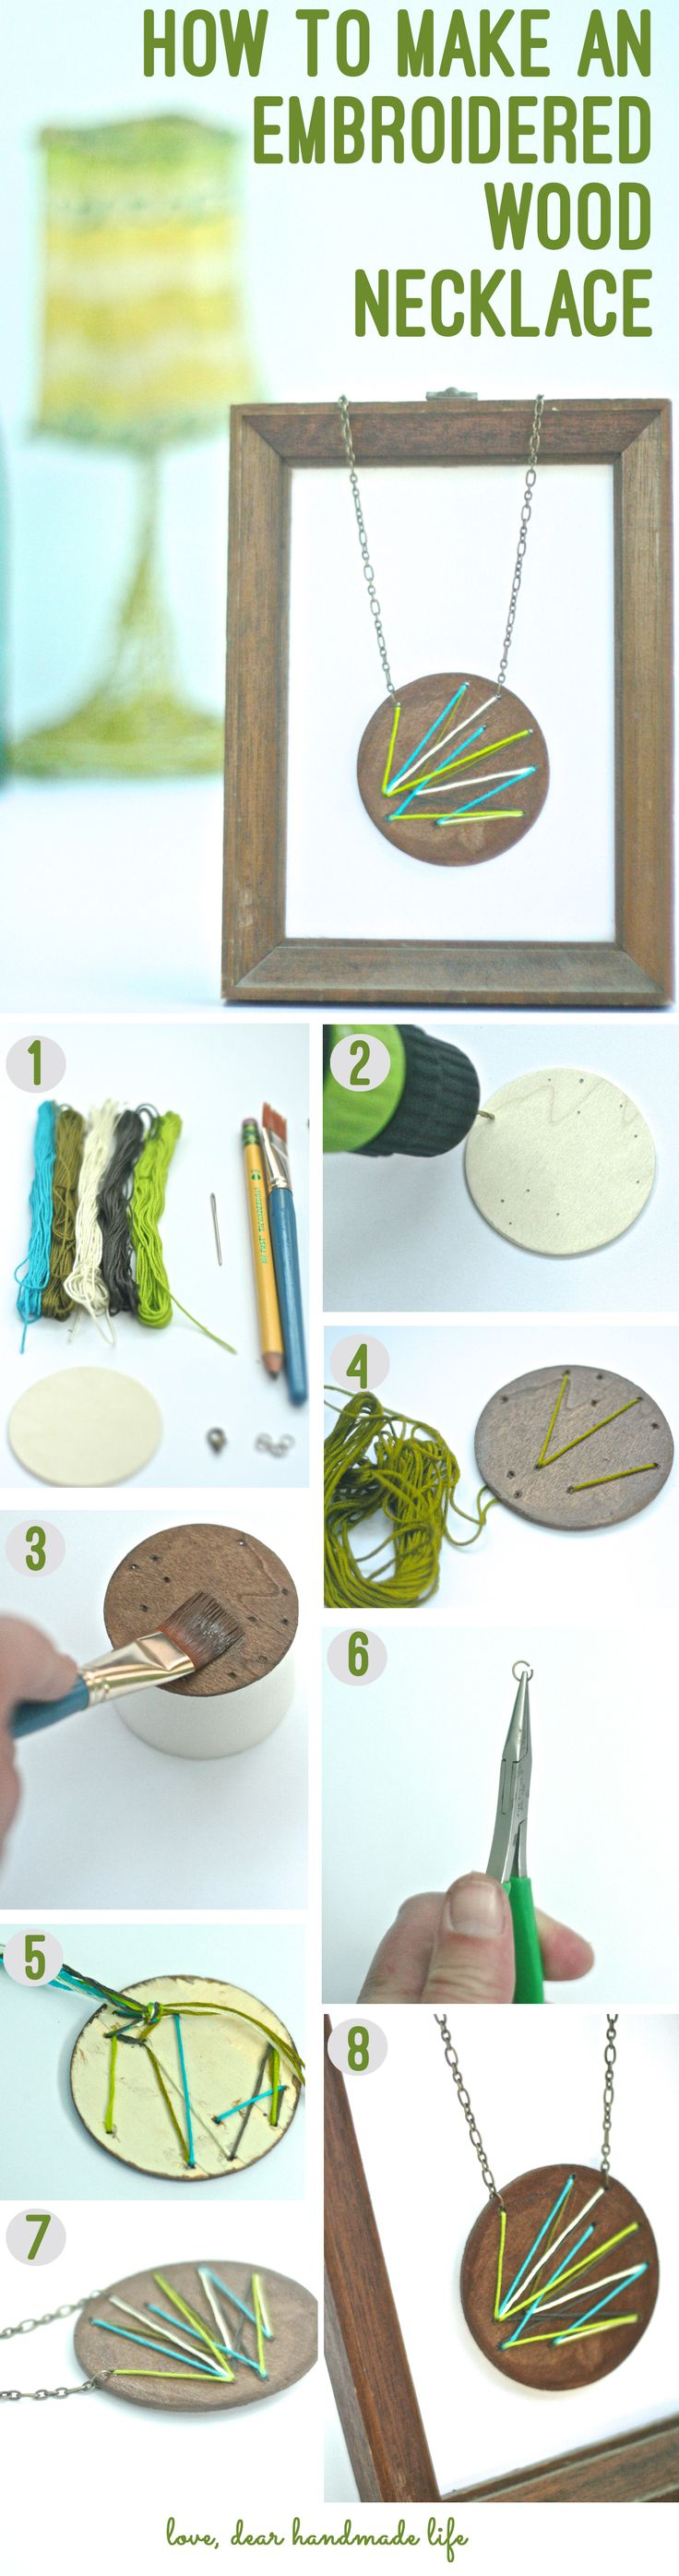 how to make an embroidered wood circle necklace - dear handmade life